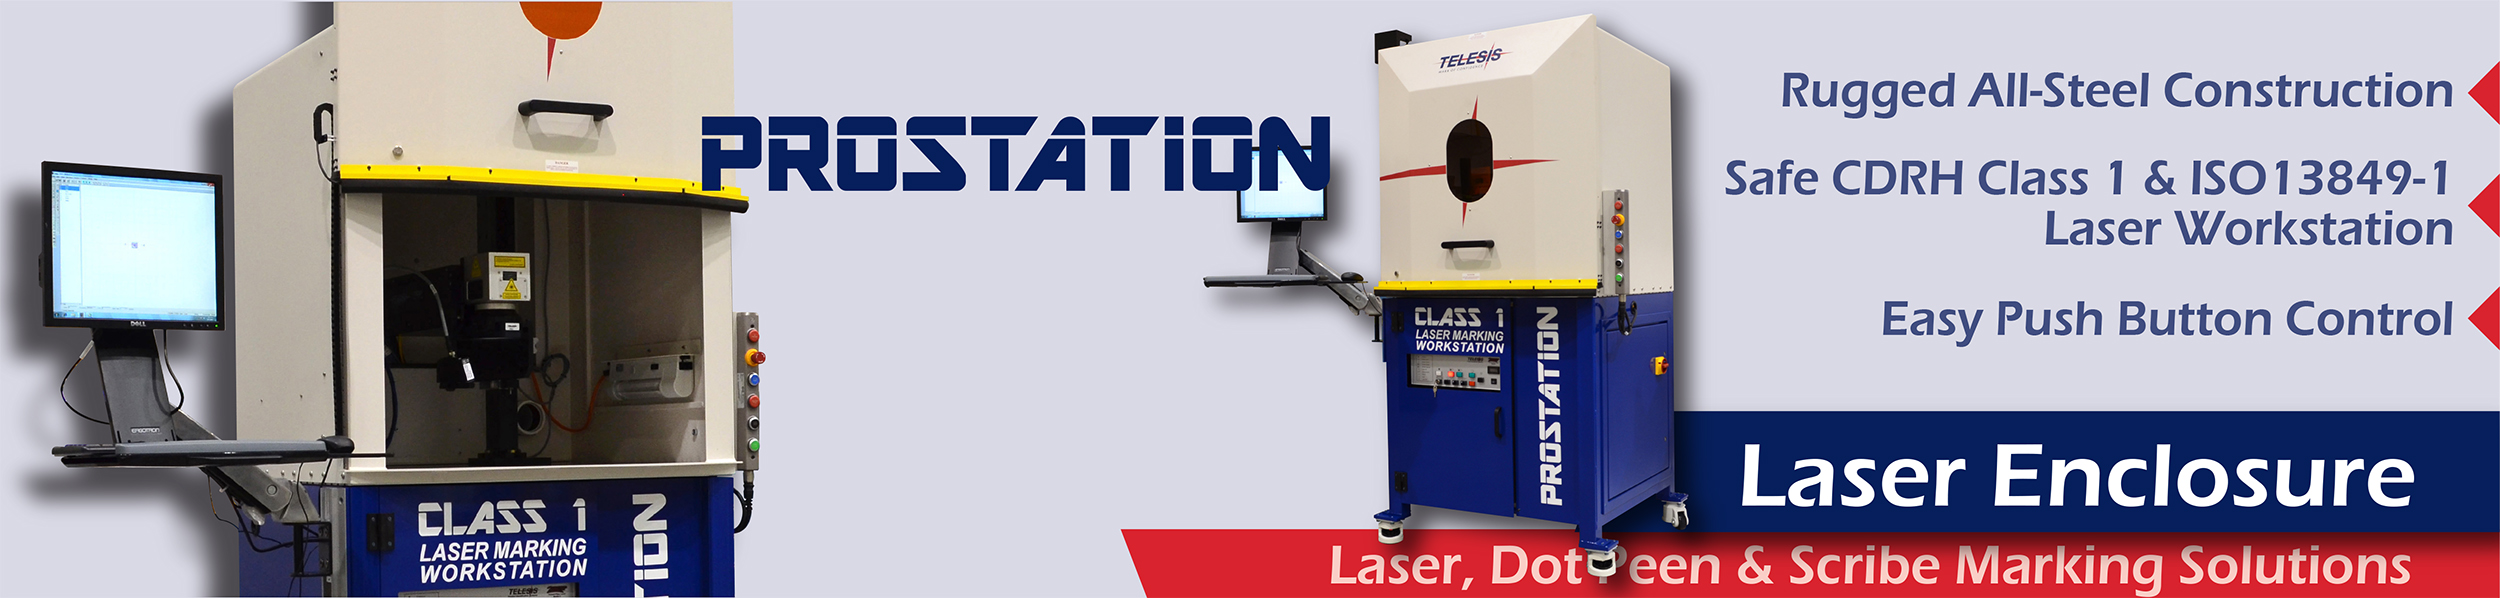 Telesis ProStation Laser Workstations